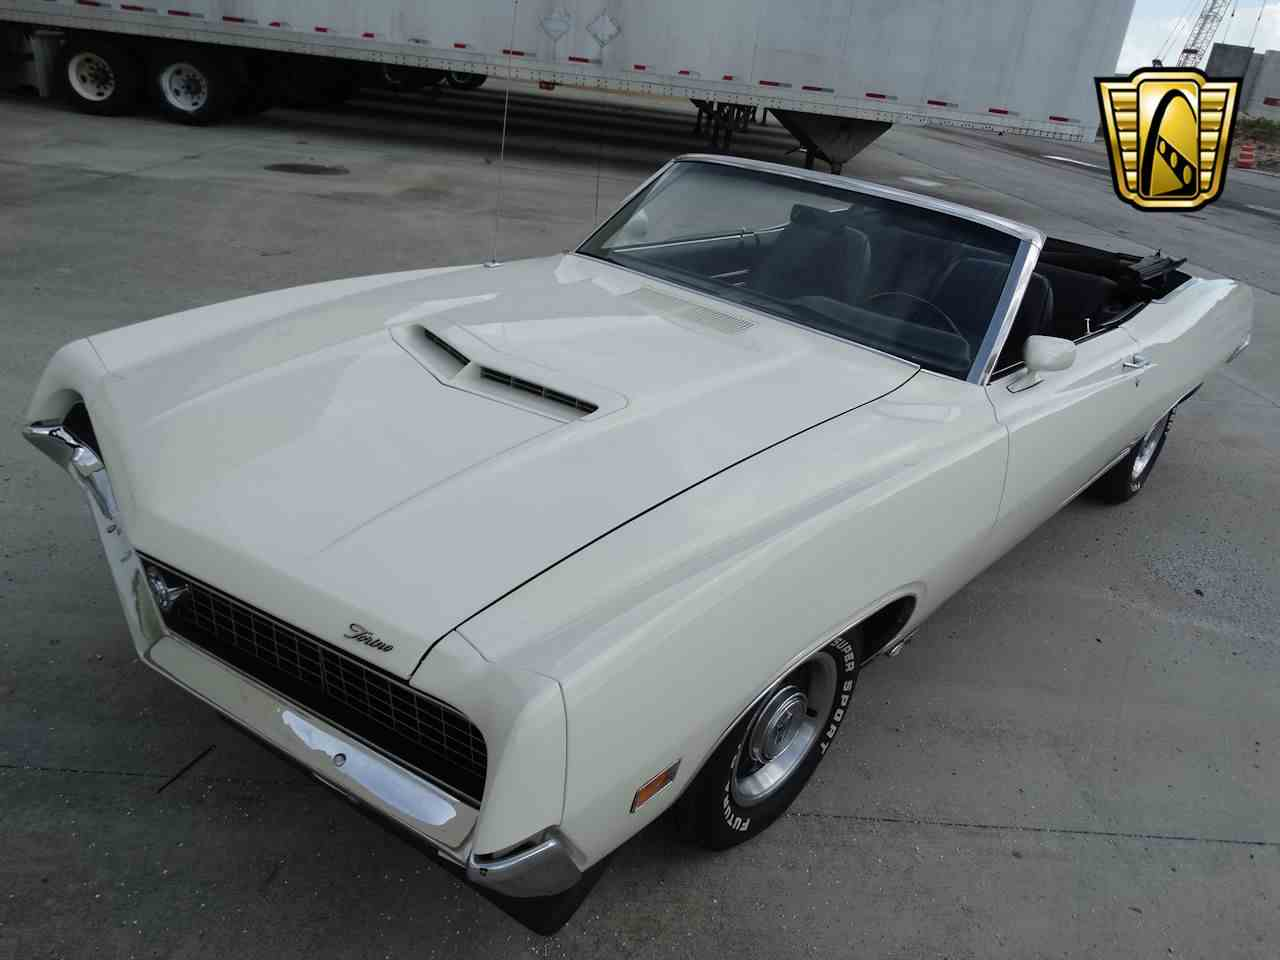 Large Picture of Classic '71 Ford Torino located in Florida - $68,000.00 Offered by Gateway Classic Cars - Fort Lauderdale - LG4B